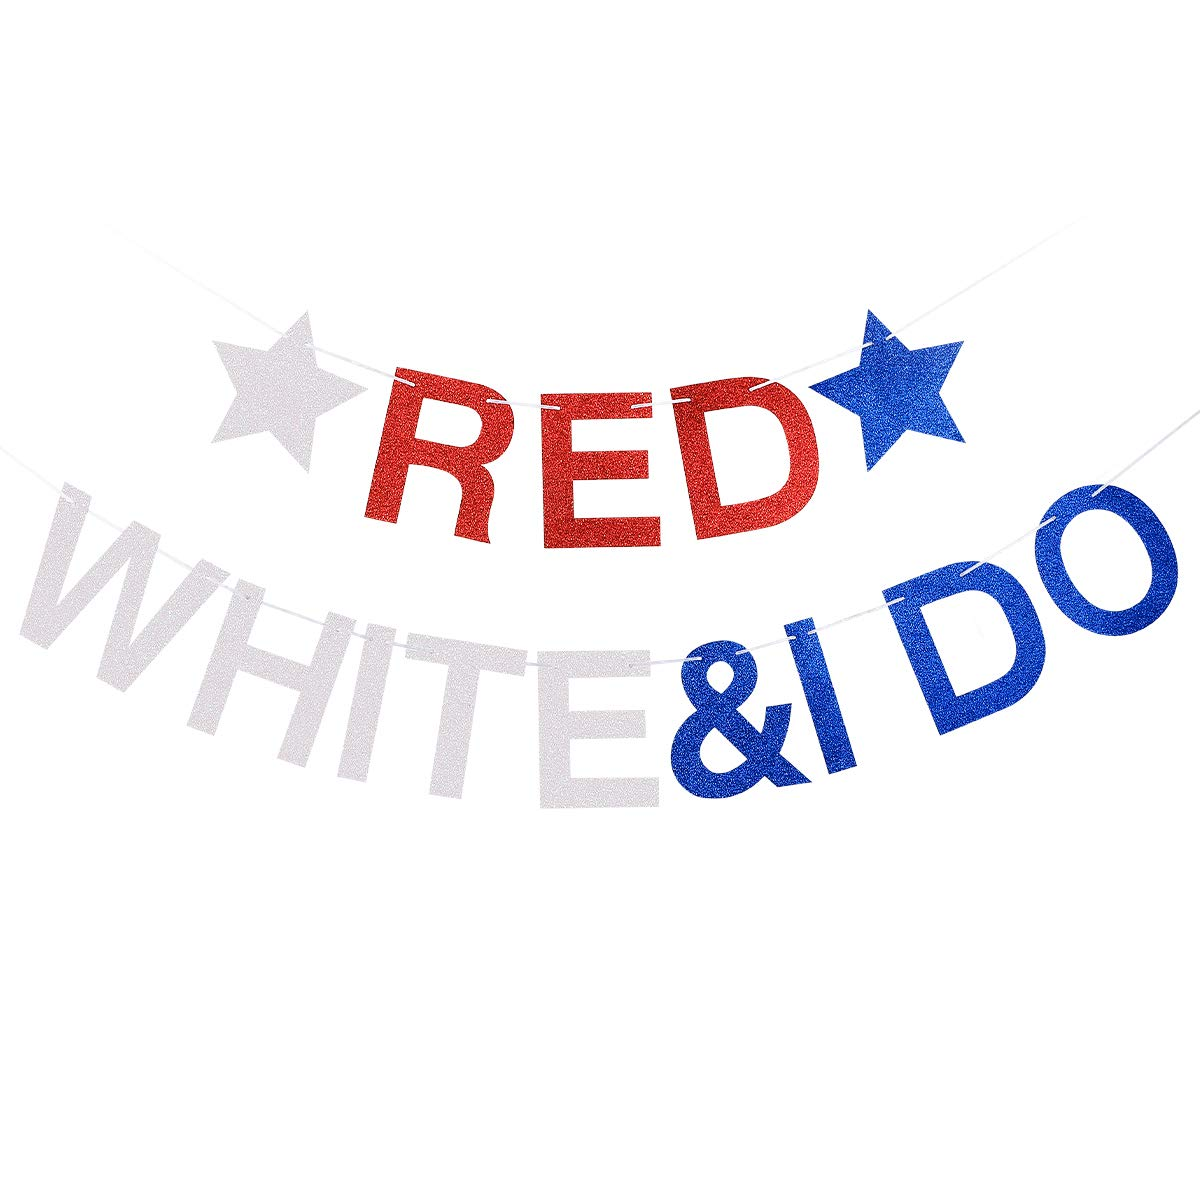 Glittery Red White & I Do Banner- 4th of July Bachelorette Party Decorations,4th of July Wedding Party Decor